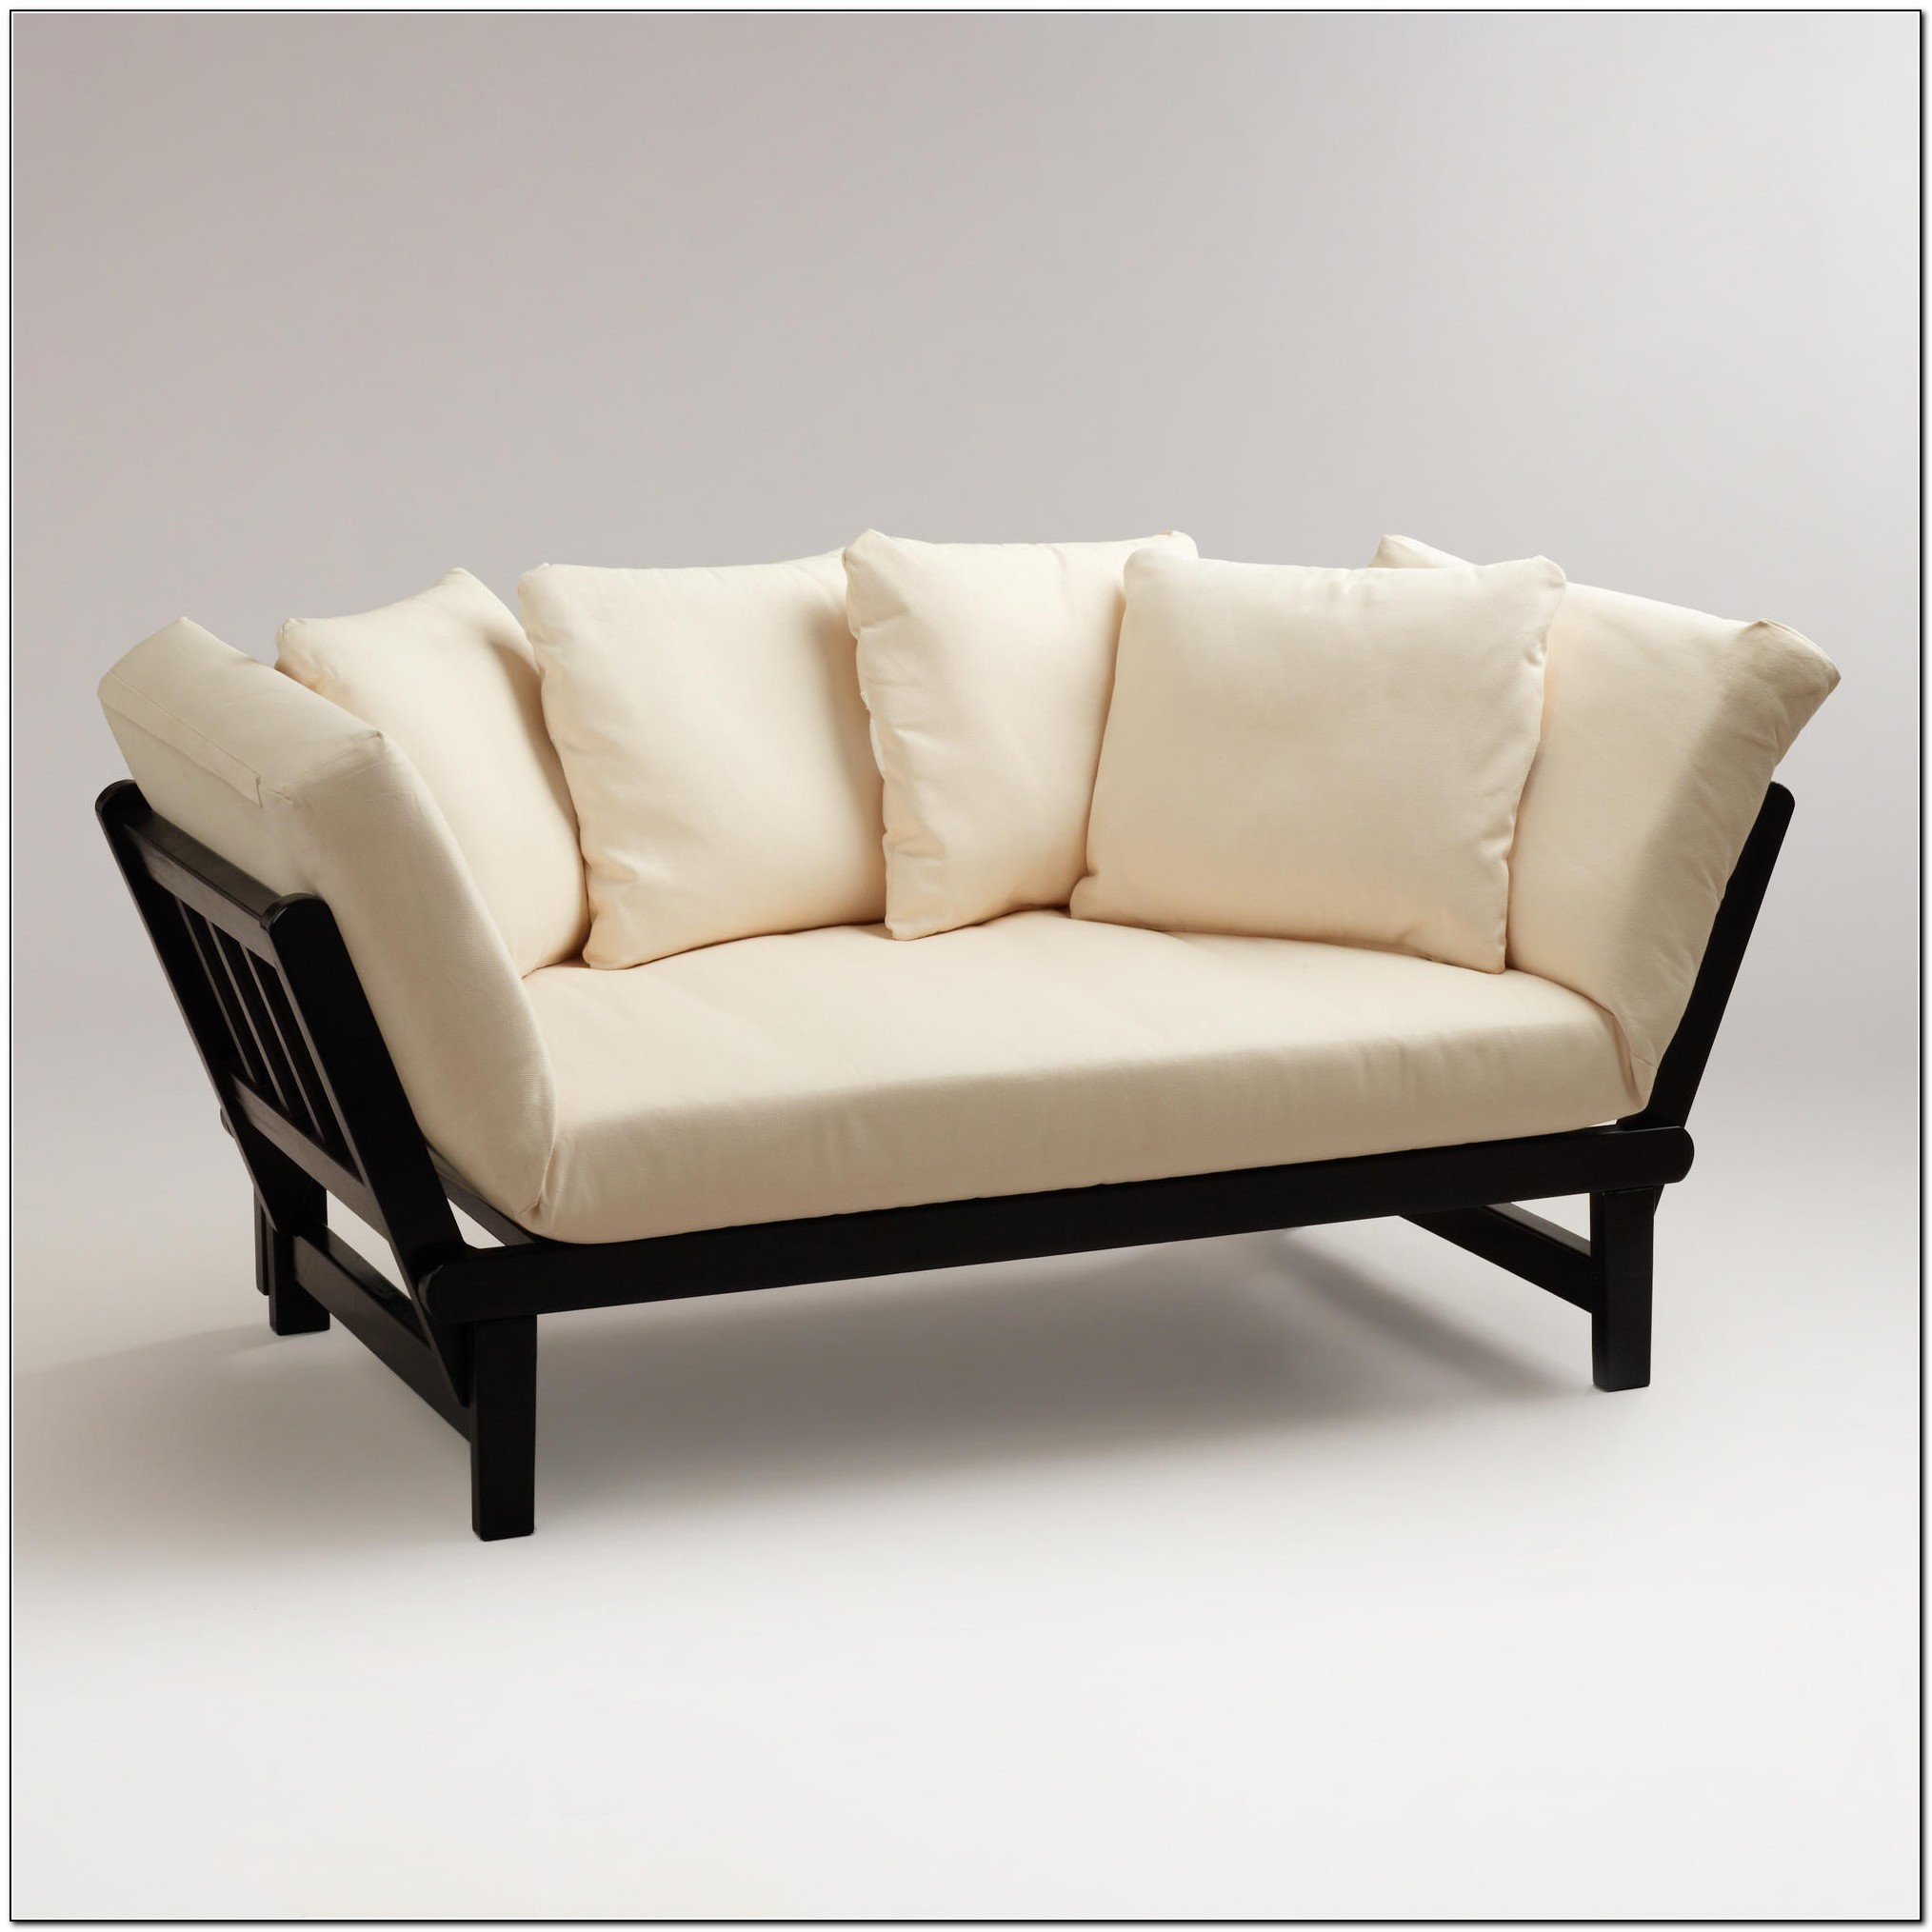 Best sofa bed in the world download page home design for Best beds in the world